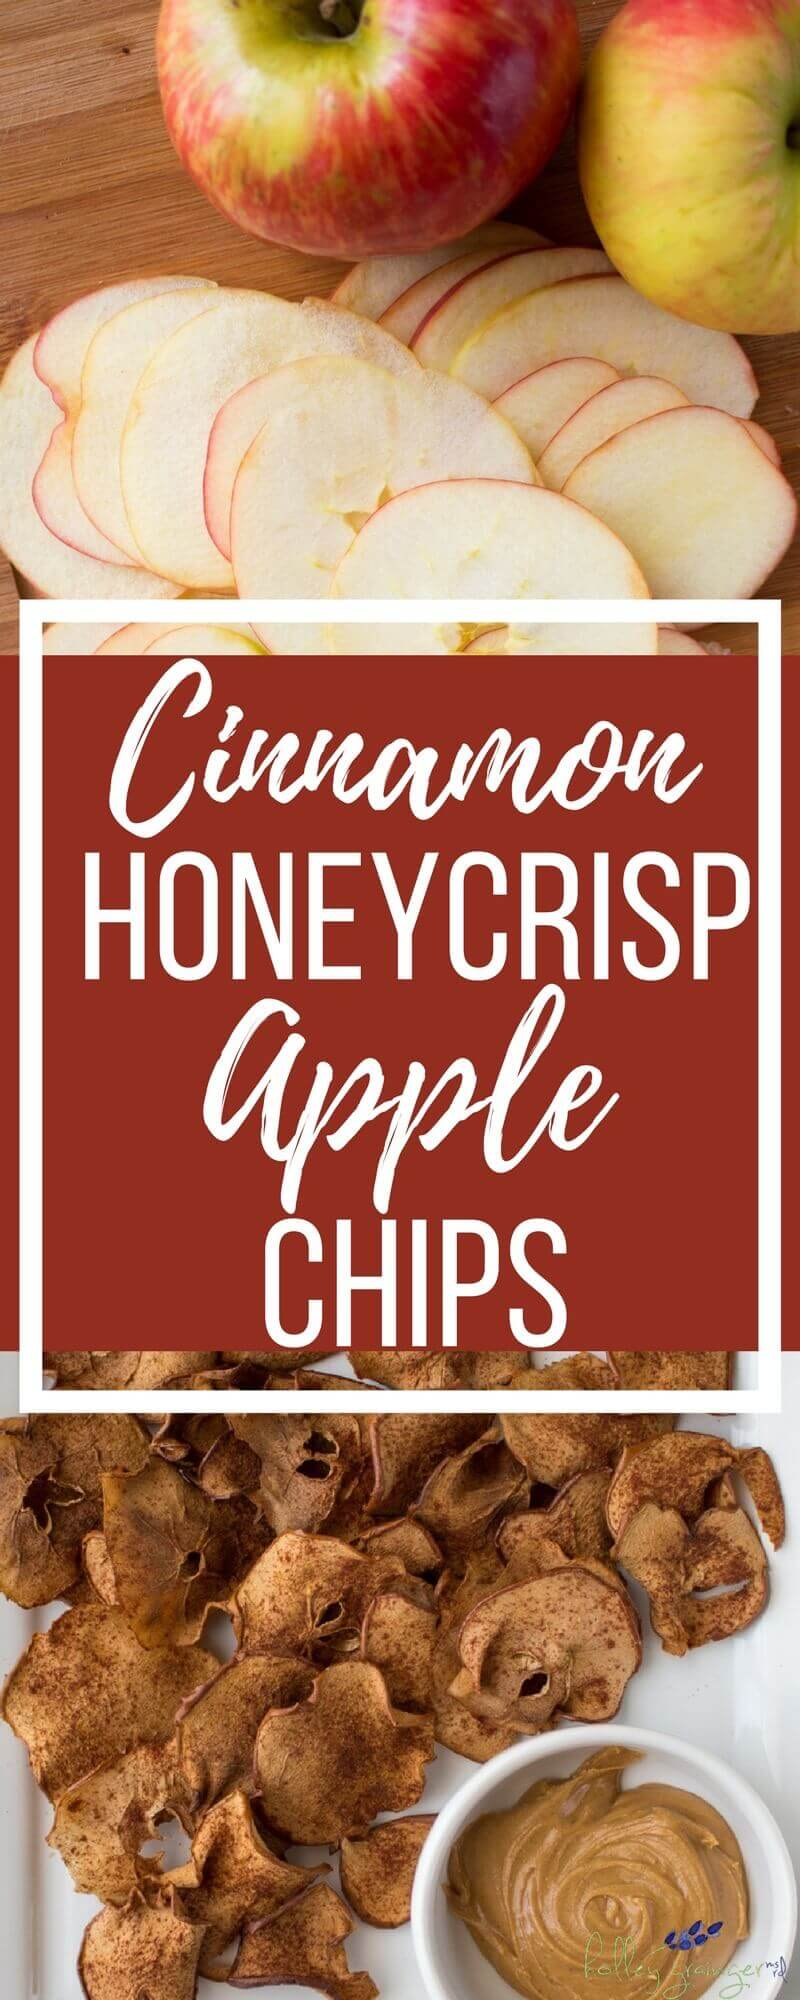 The ushering in of cool, crisp temperatures means one thing to me each year, Cinnamon Honeycrisp apples chips. Try making this simple snack today!